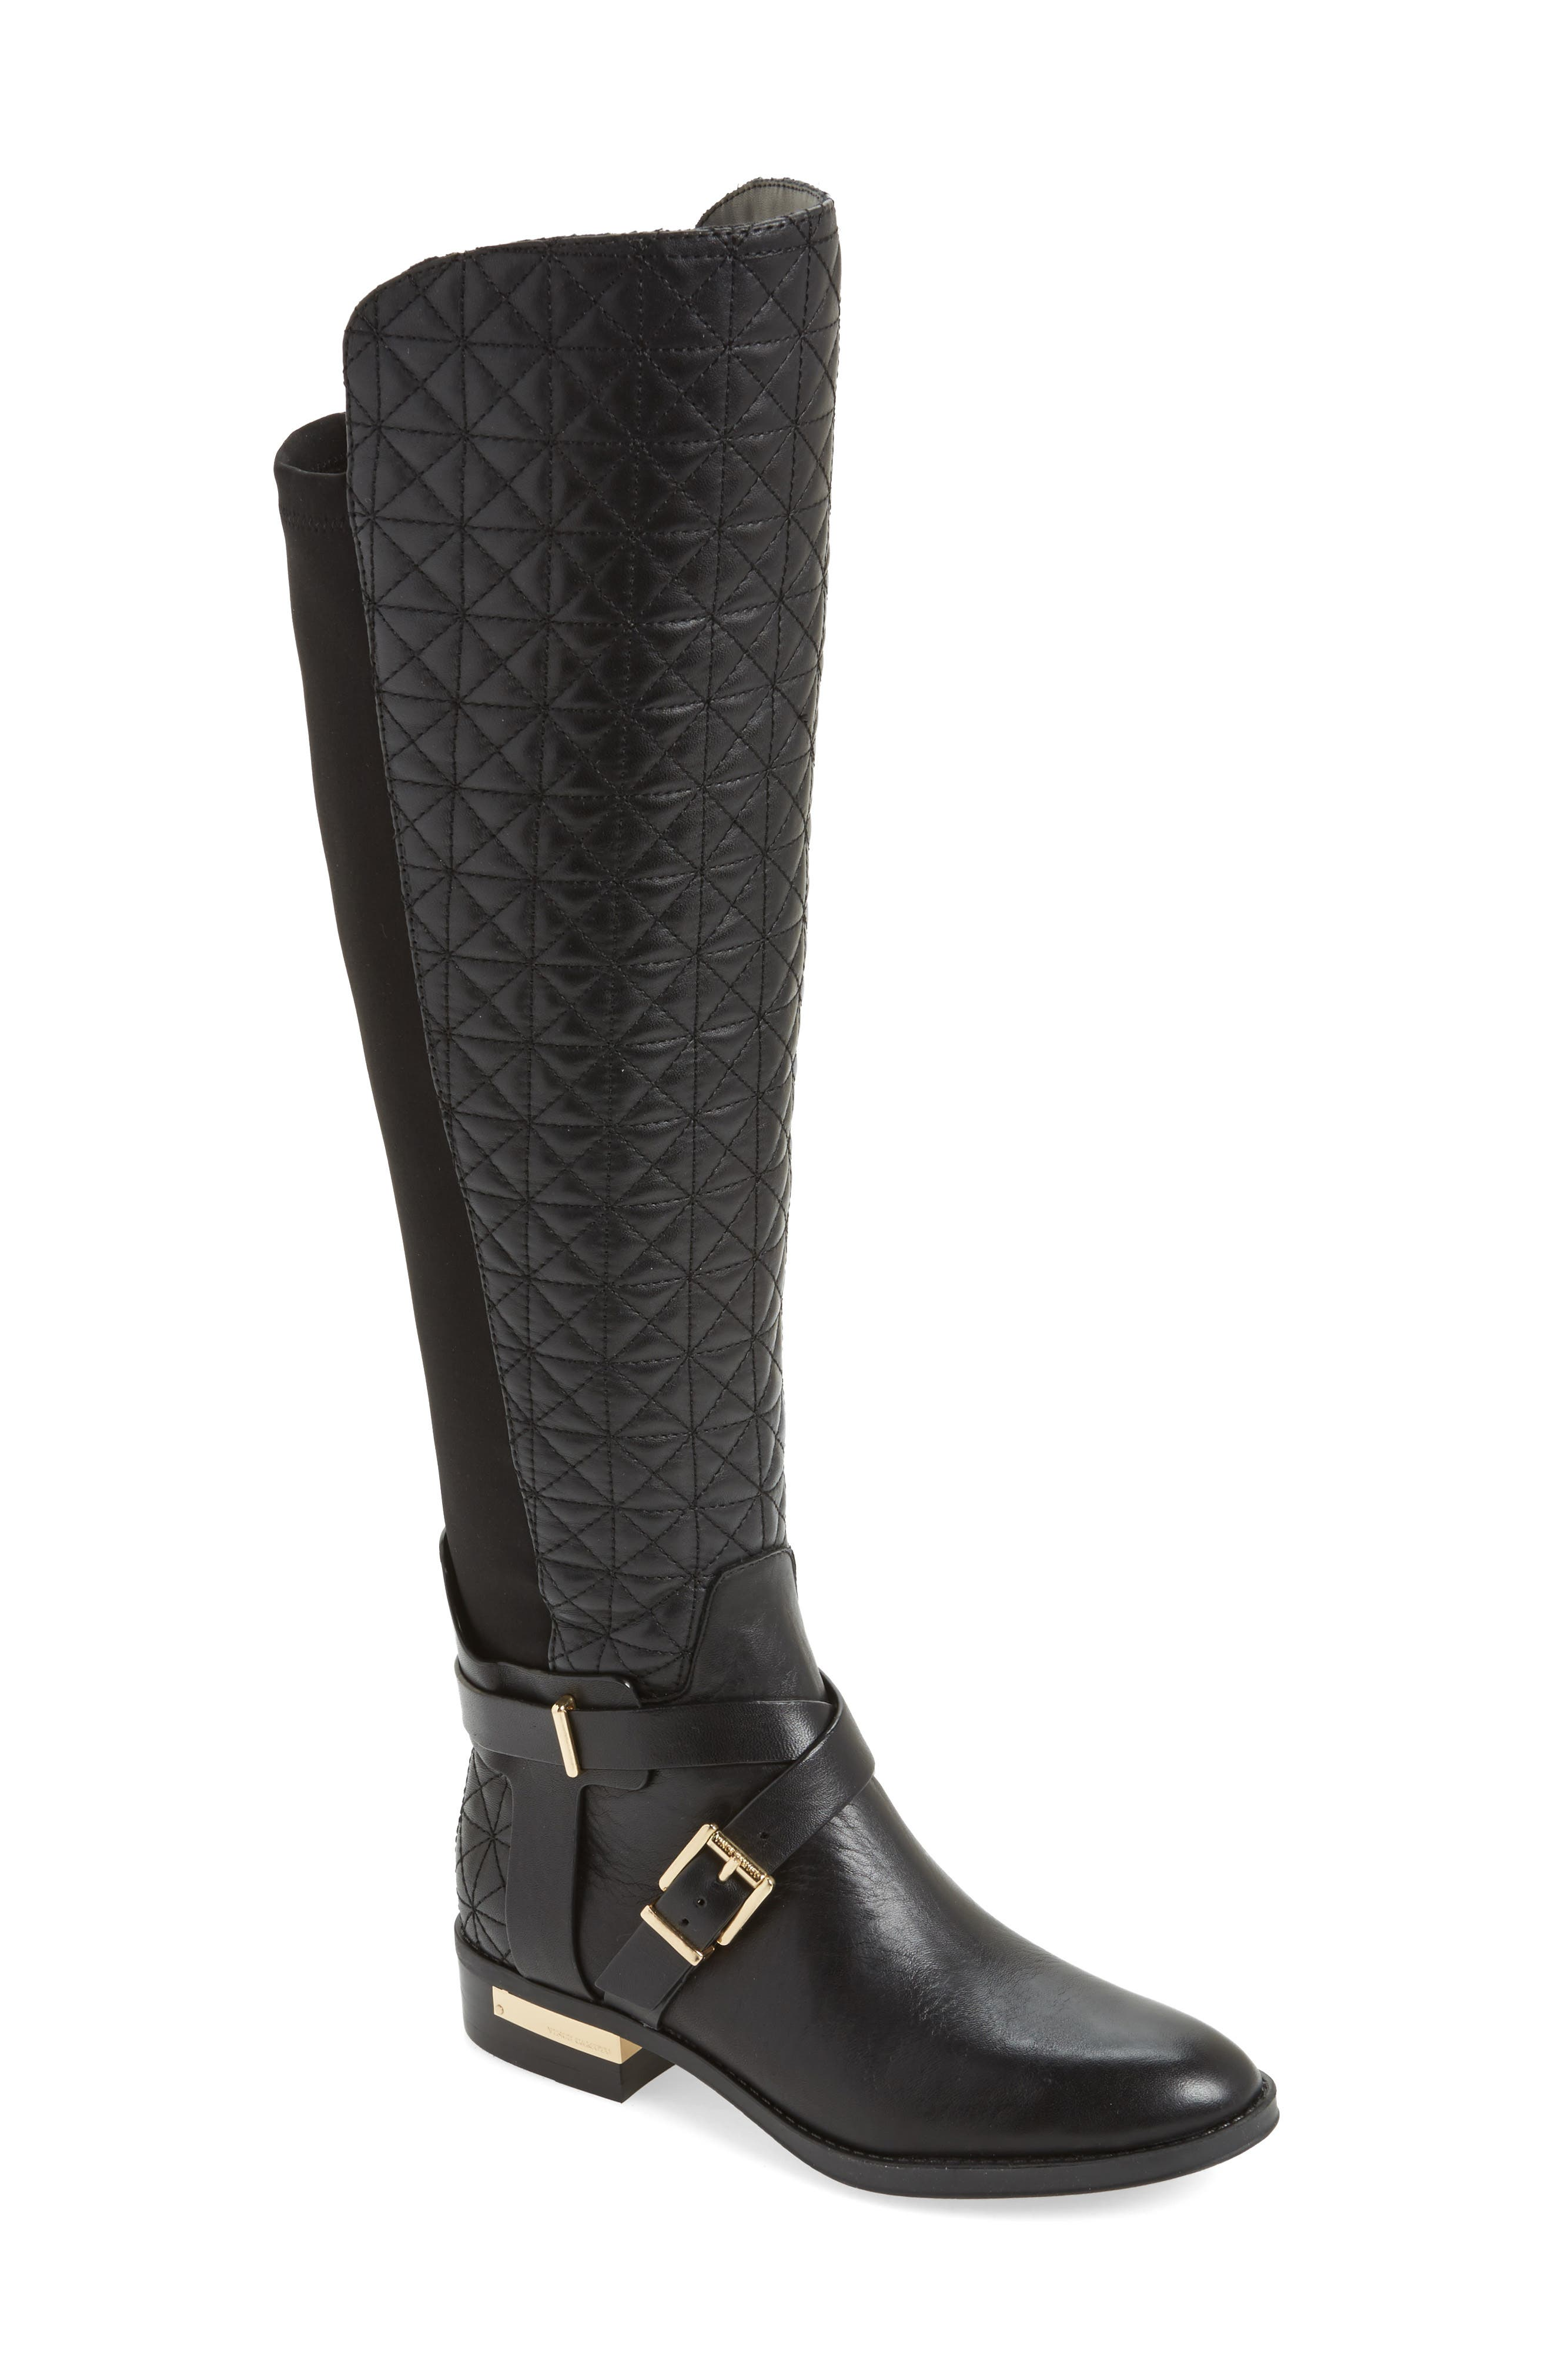 Patira Over the Knee Boot,                         Main,                         color, Black Leather Wide Calf